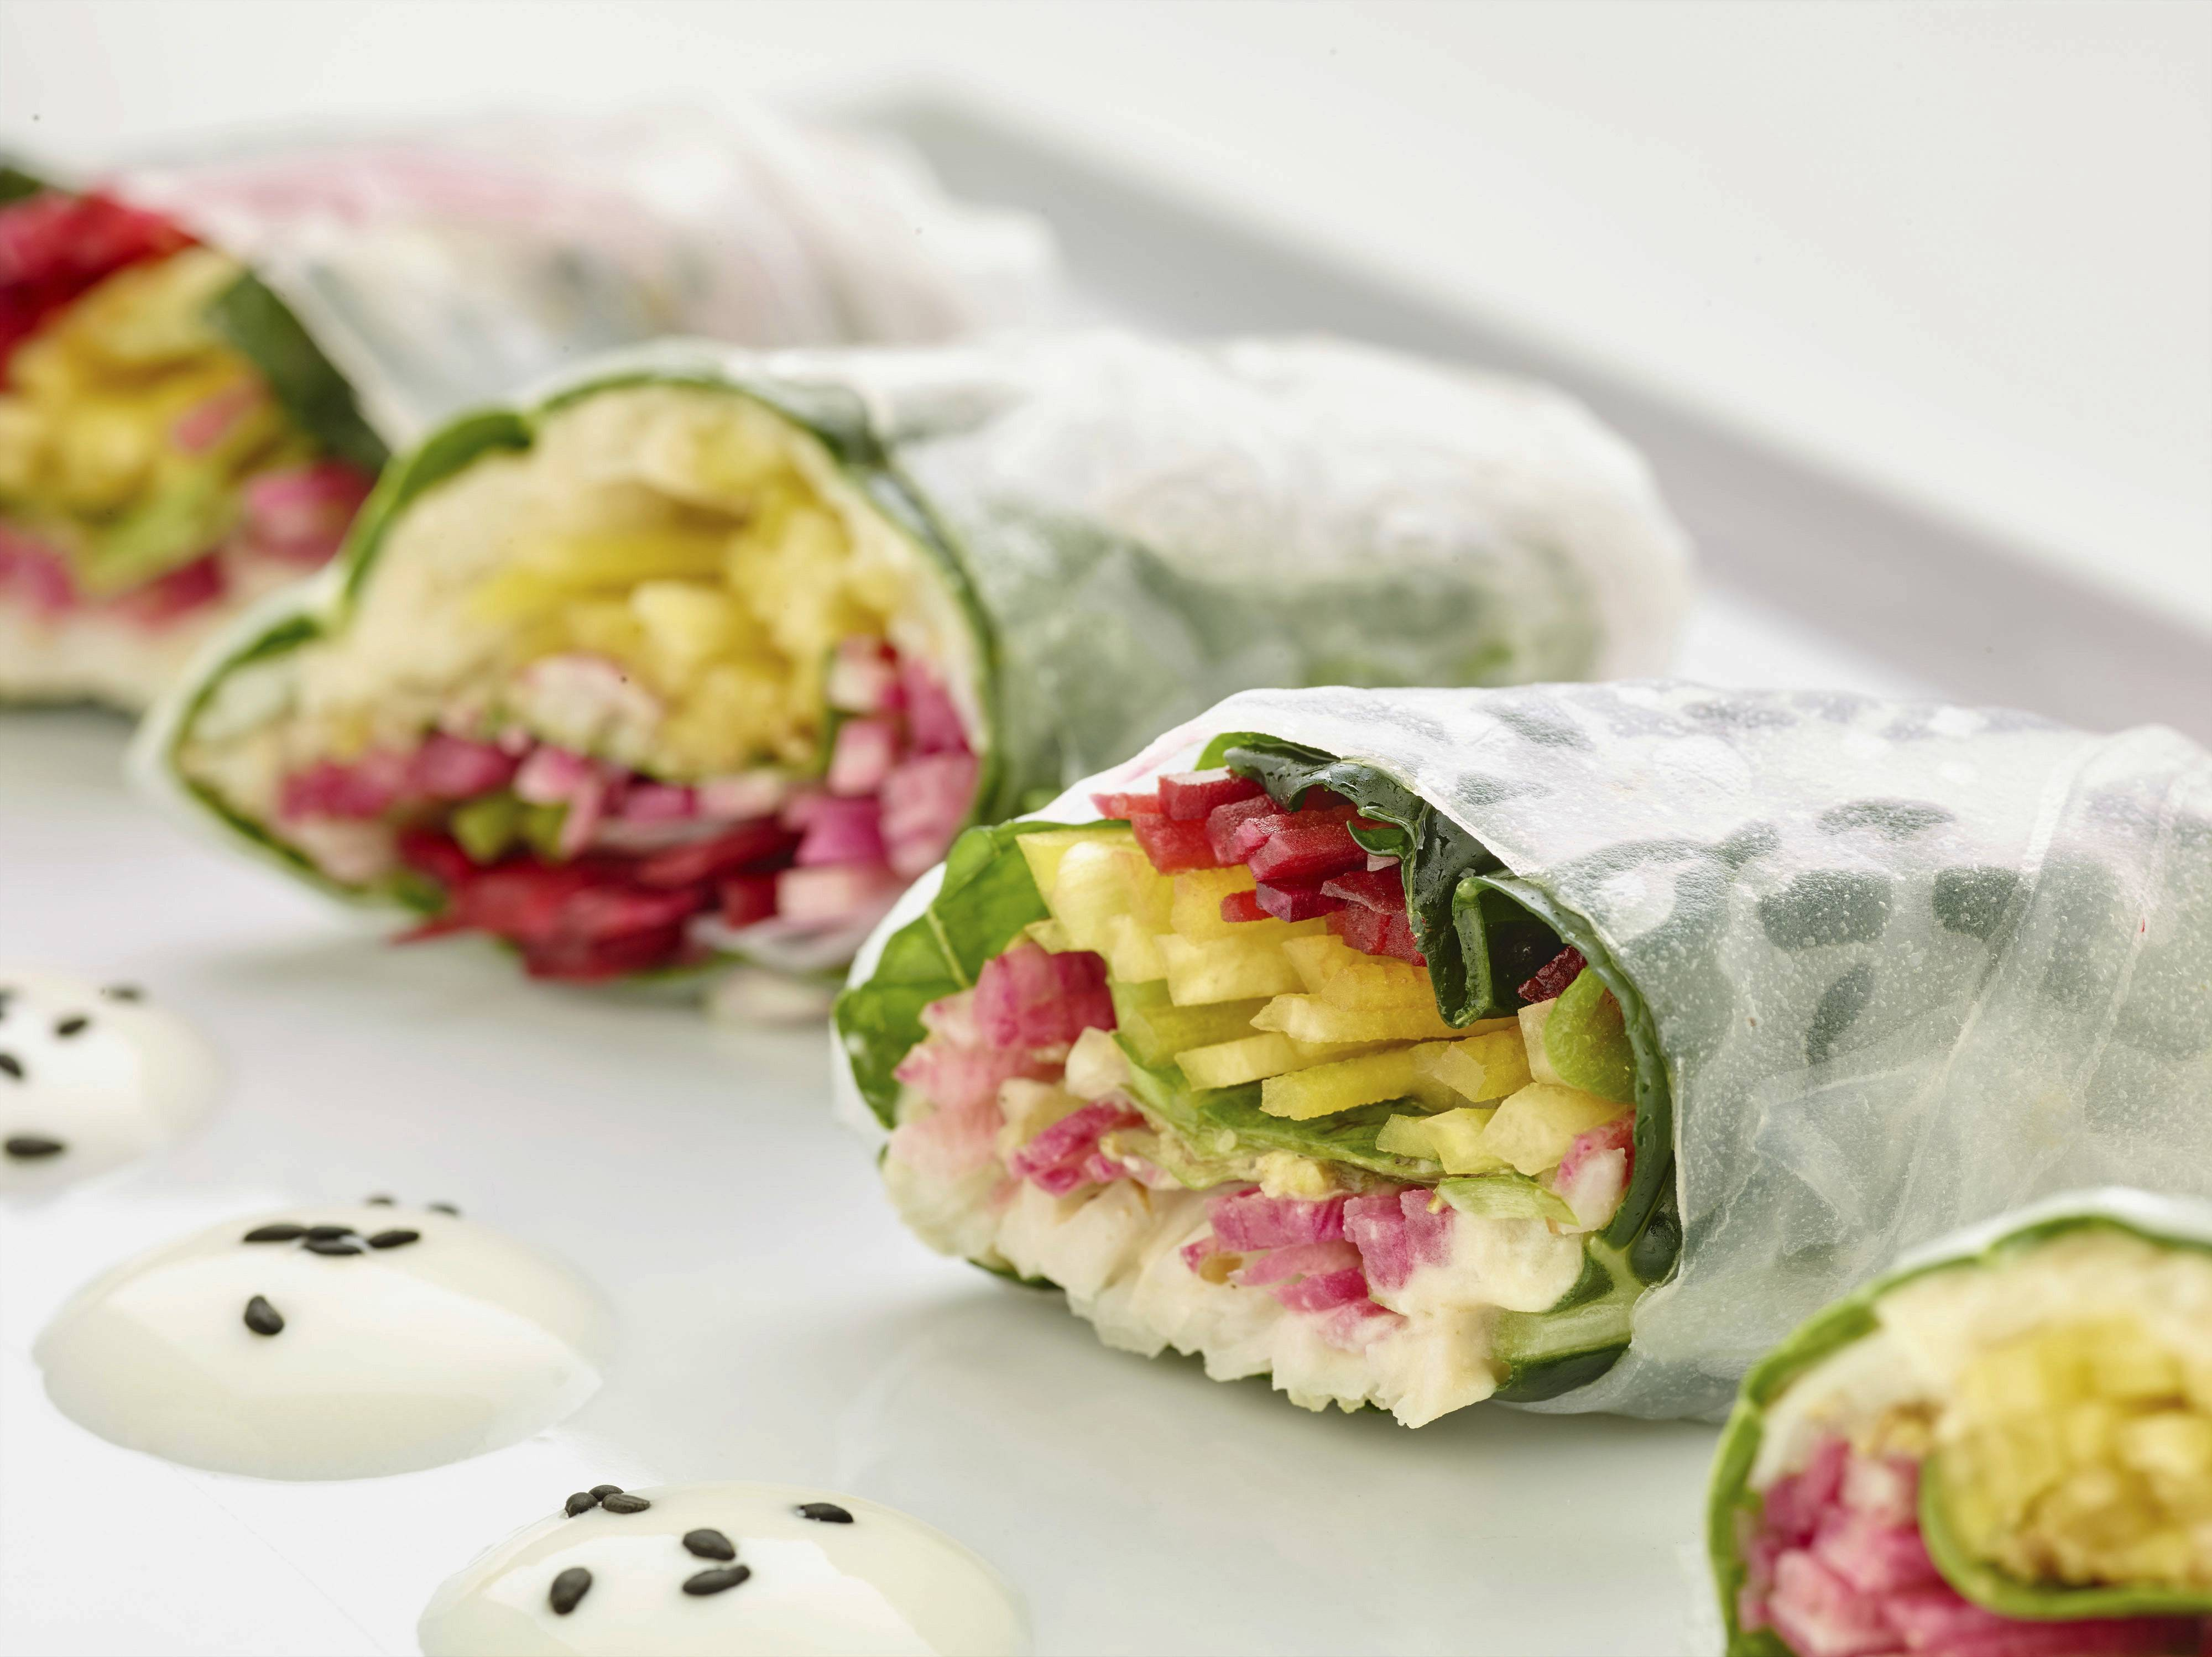 The Culinary Institute of America's Vegetable Spring Rolls recipe is packed full of these super-vegetables, which means it's also full of antioxidants; fiber; vitamins C, E, and K; and folate. Just in time for a little post-holiday detox.